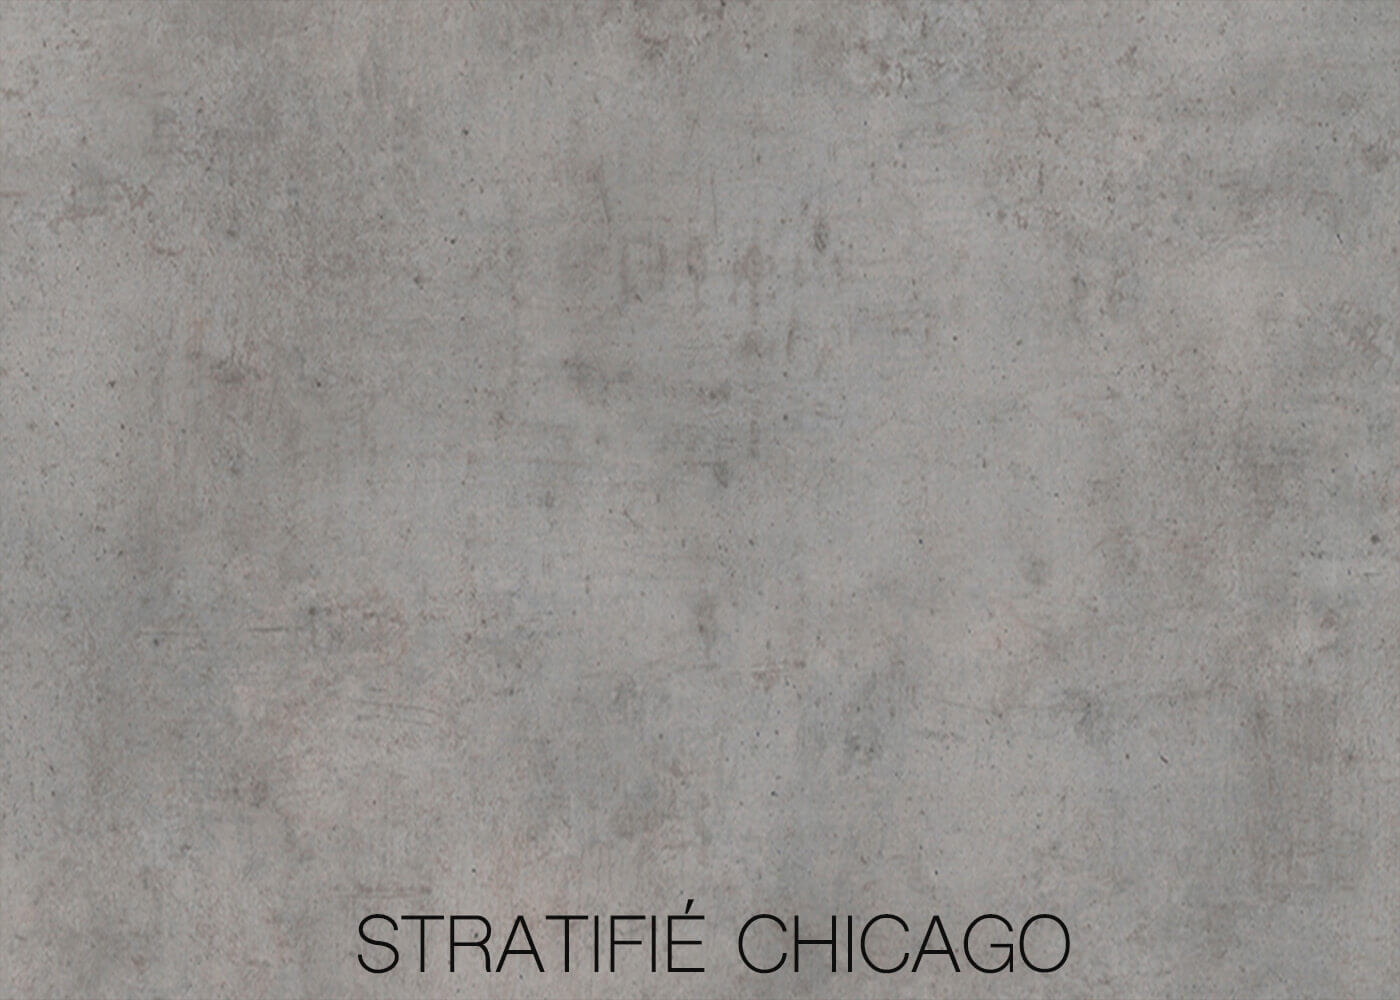 STRATIFIE CHICAGO